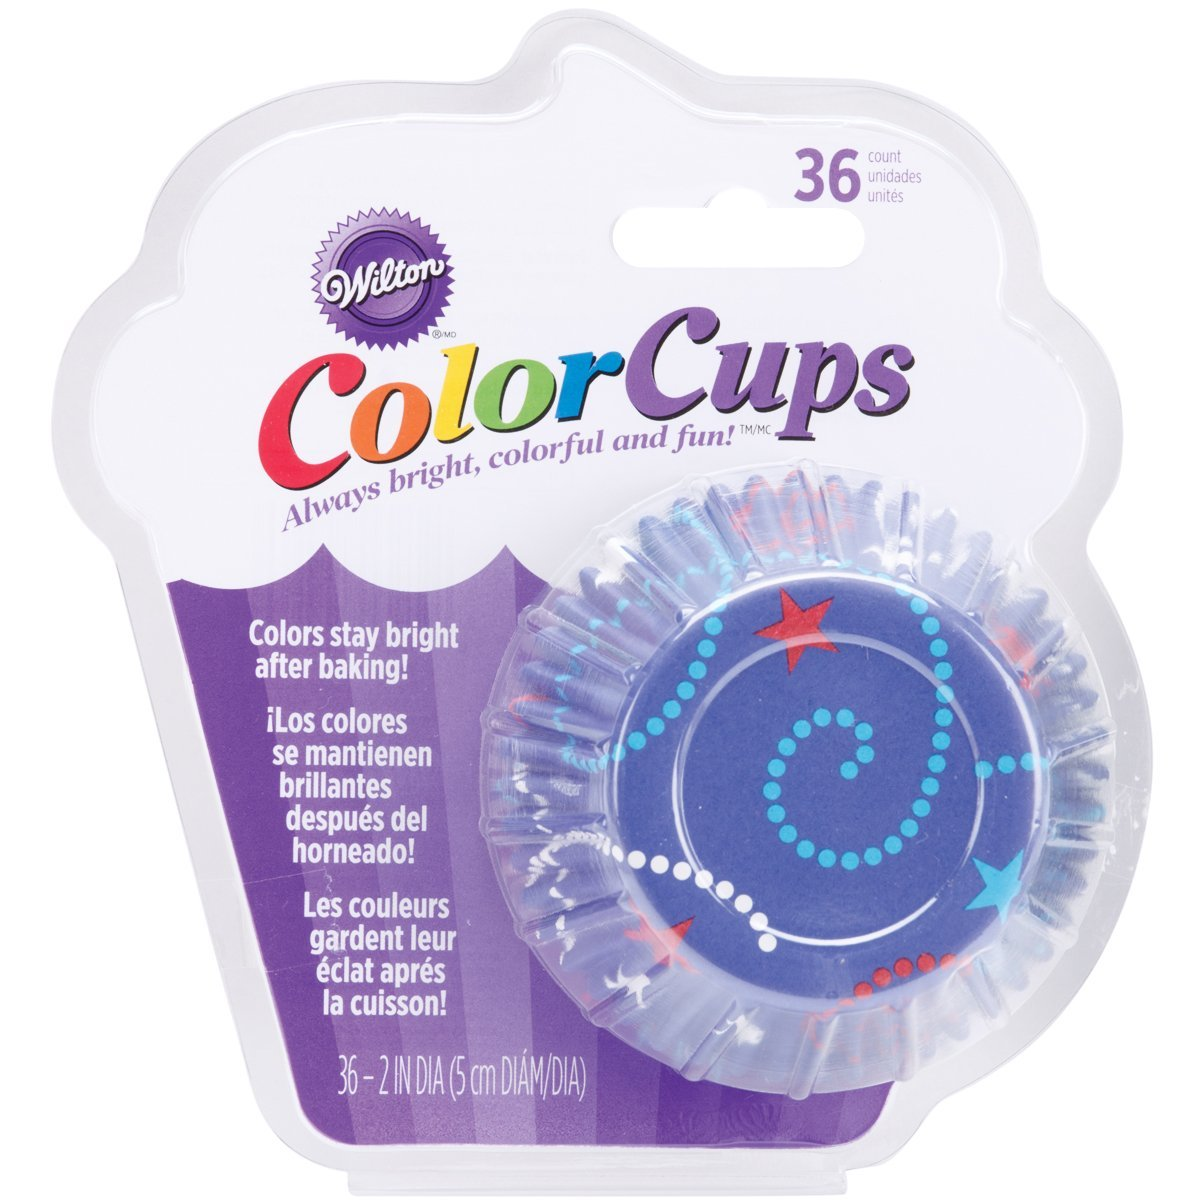 Wilton ColorCups Blue Celebrate Standard Baking Cups, 36 Count